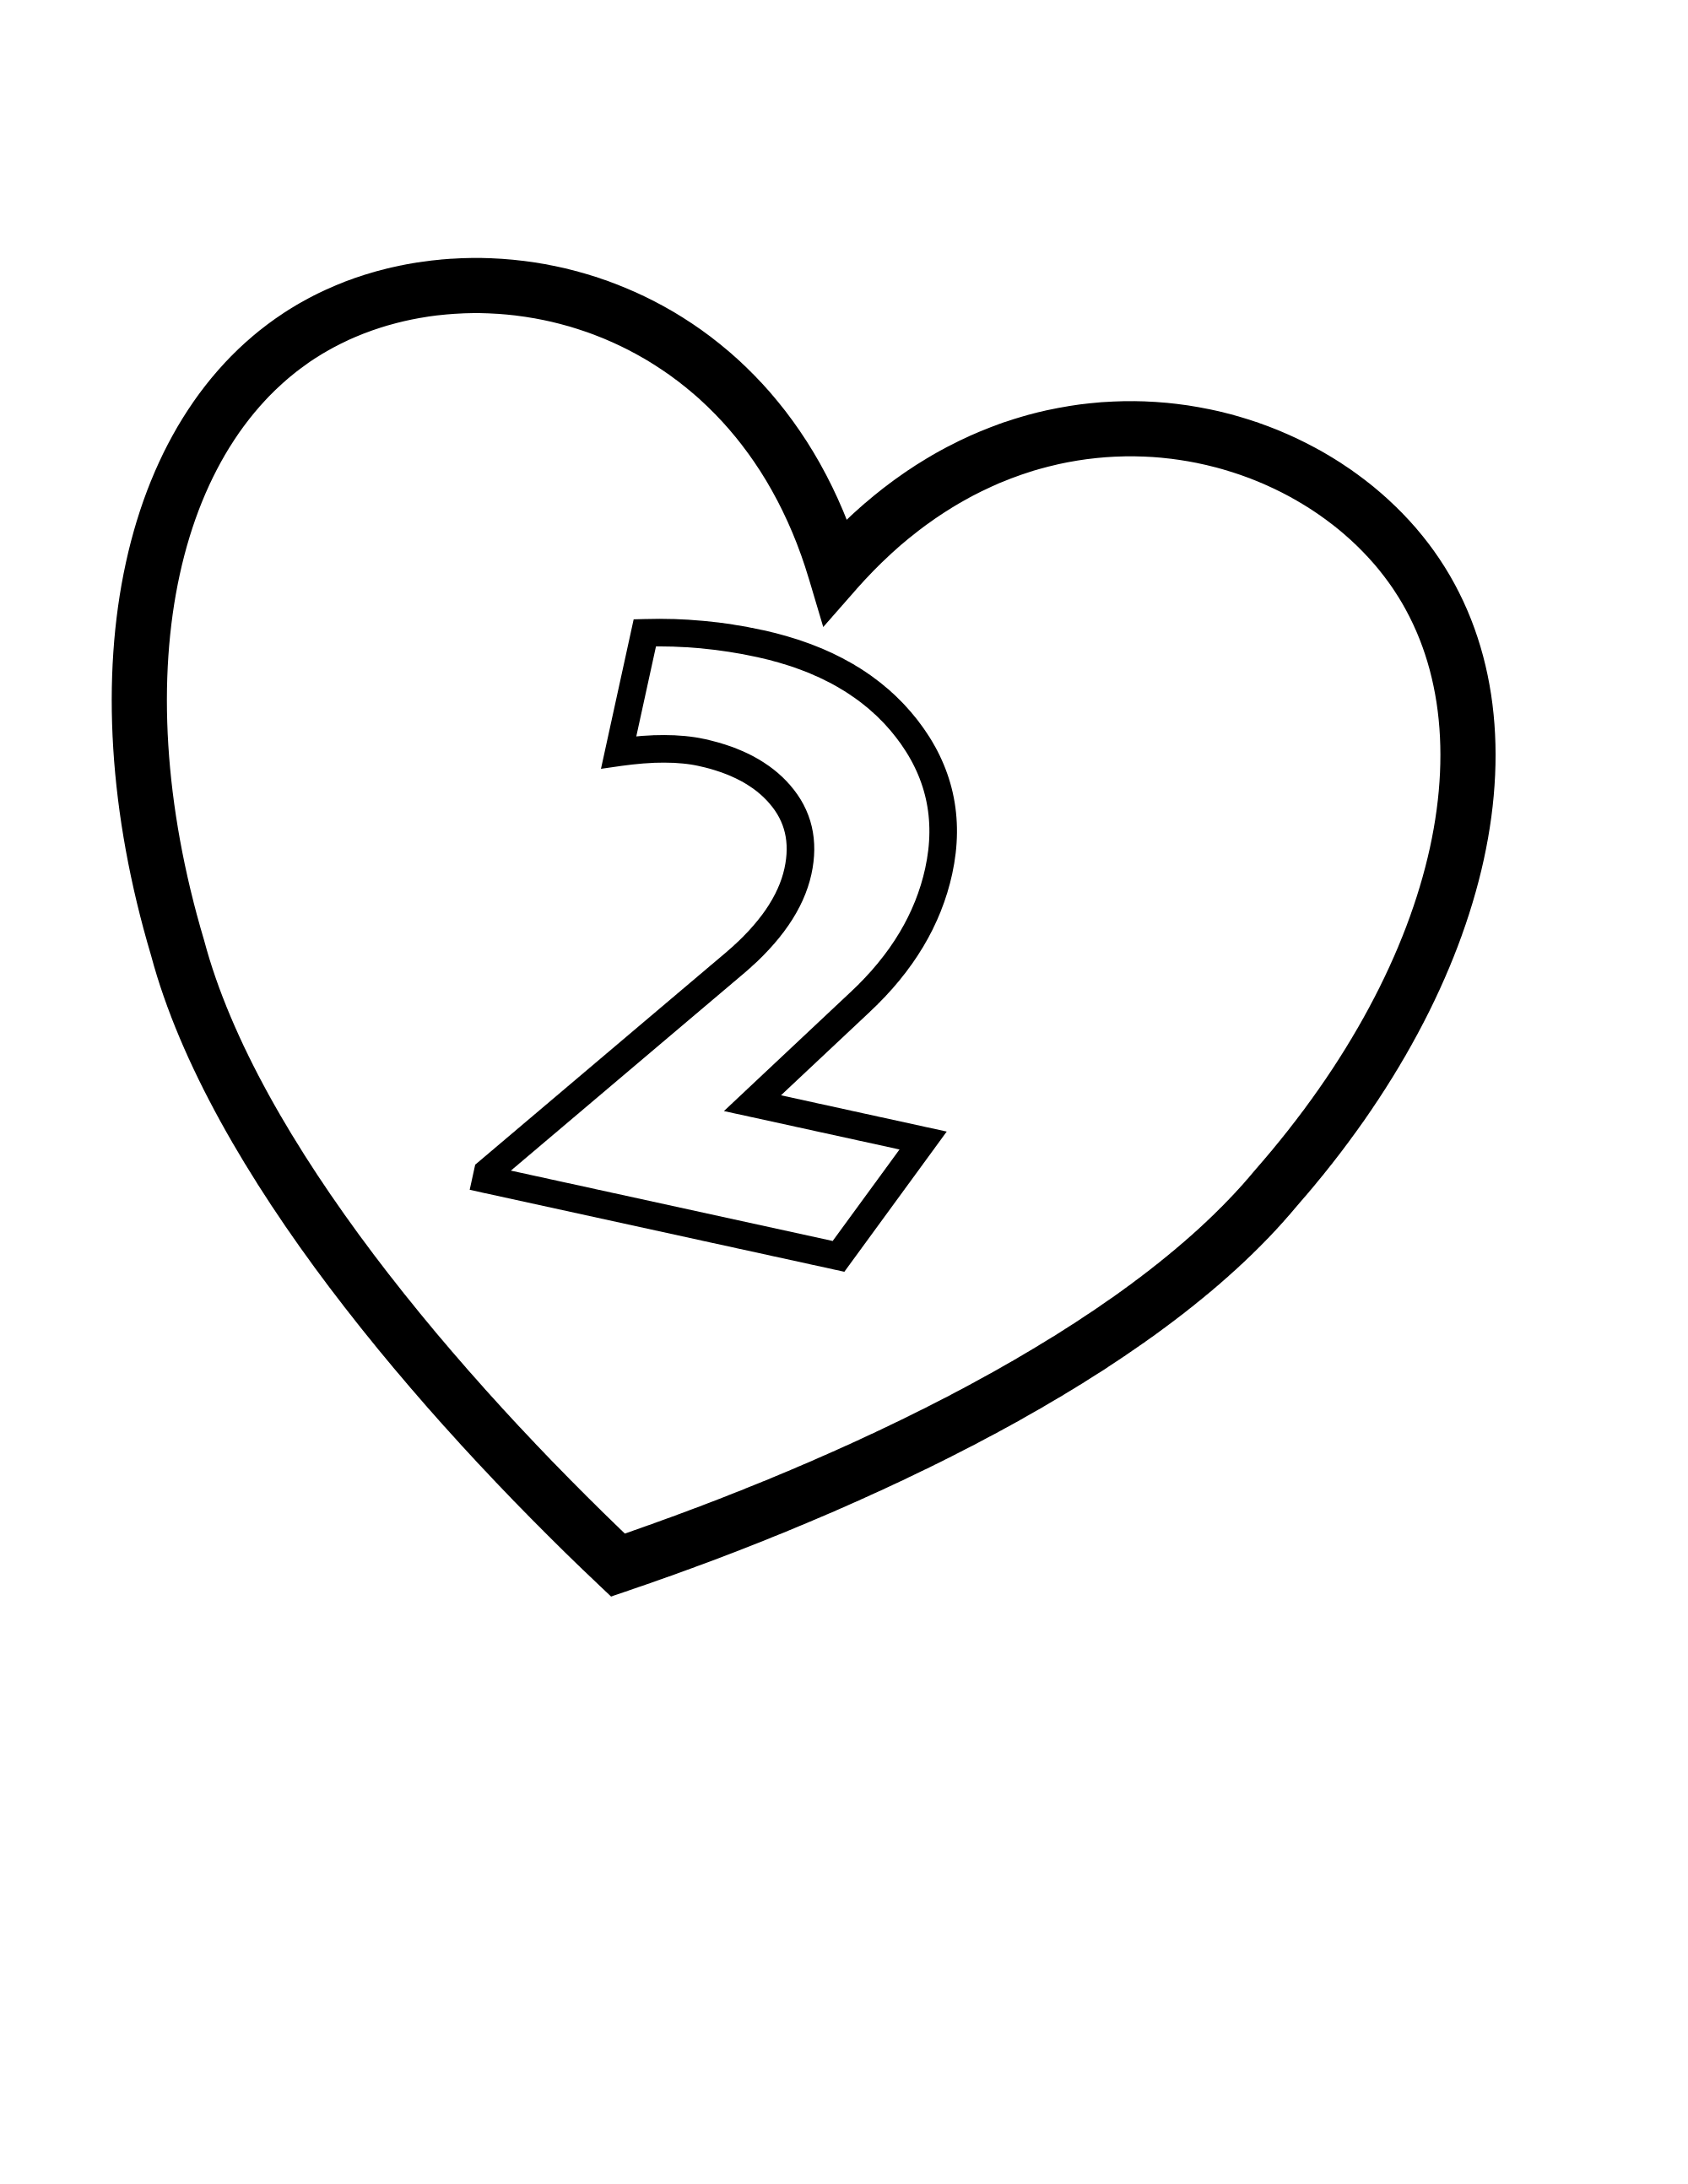 2000x2588 filevalentines day hearts number 2 2000x2588 filevalentines day hearts number 2 700x683 free printable be my valentine coloring page - Free Valentine Coloring Pages 2